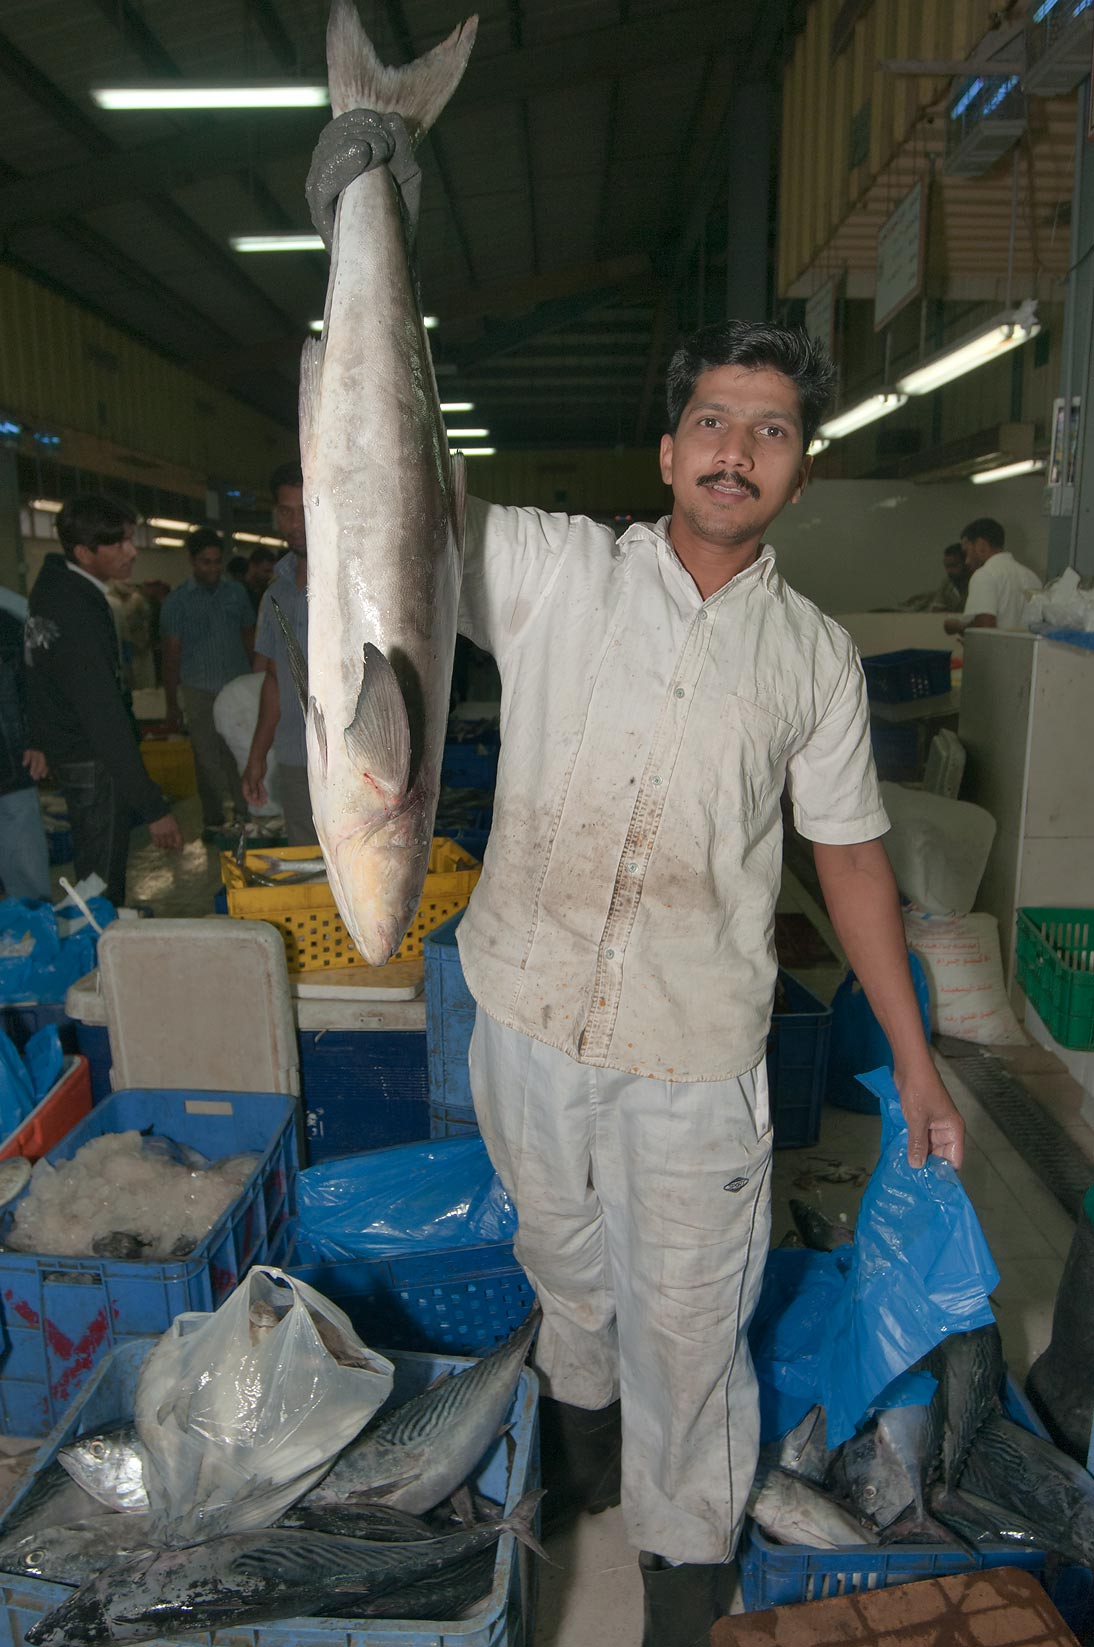 Worker with a fish in Central Fish Market. Doha, Qatar